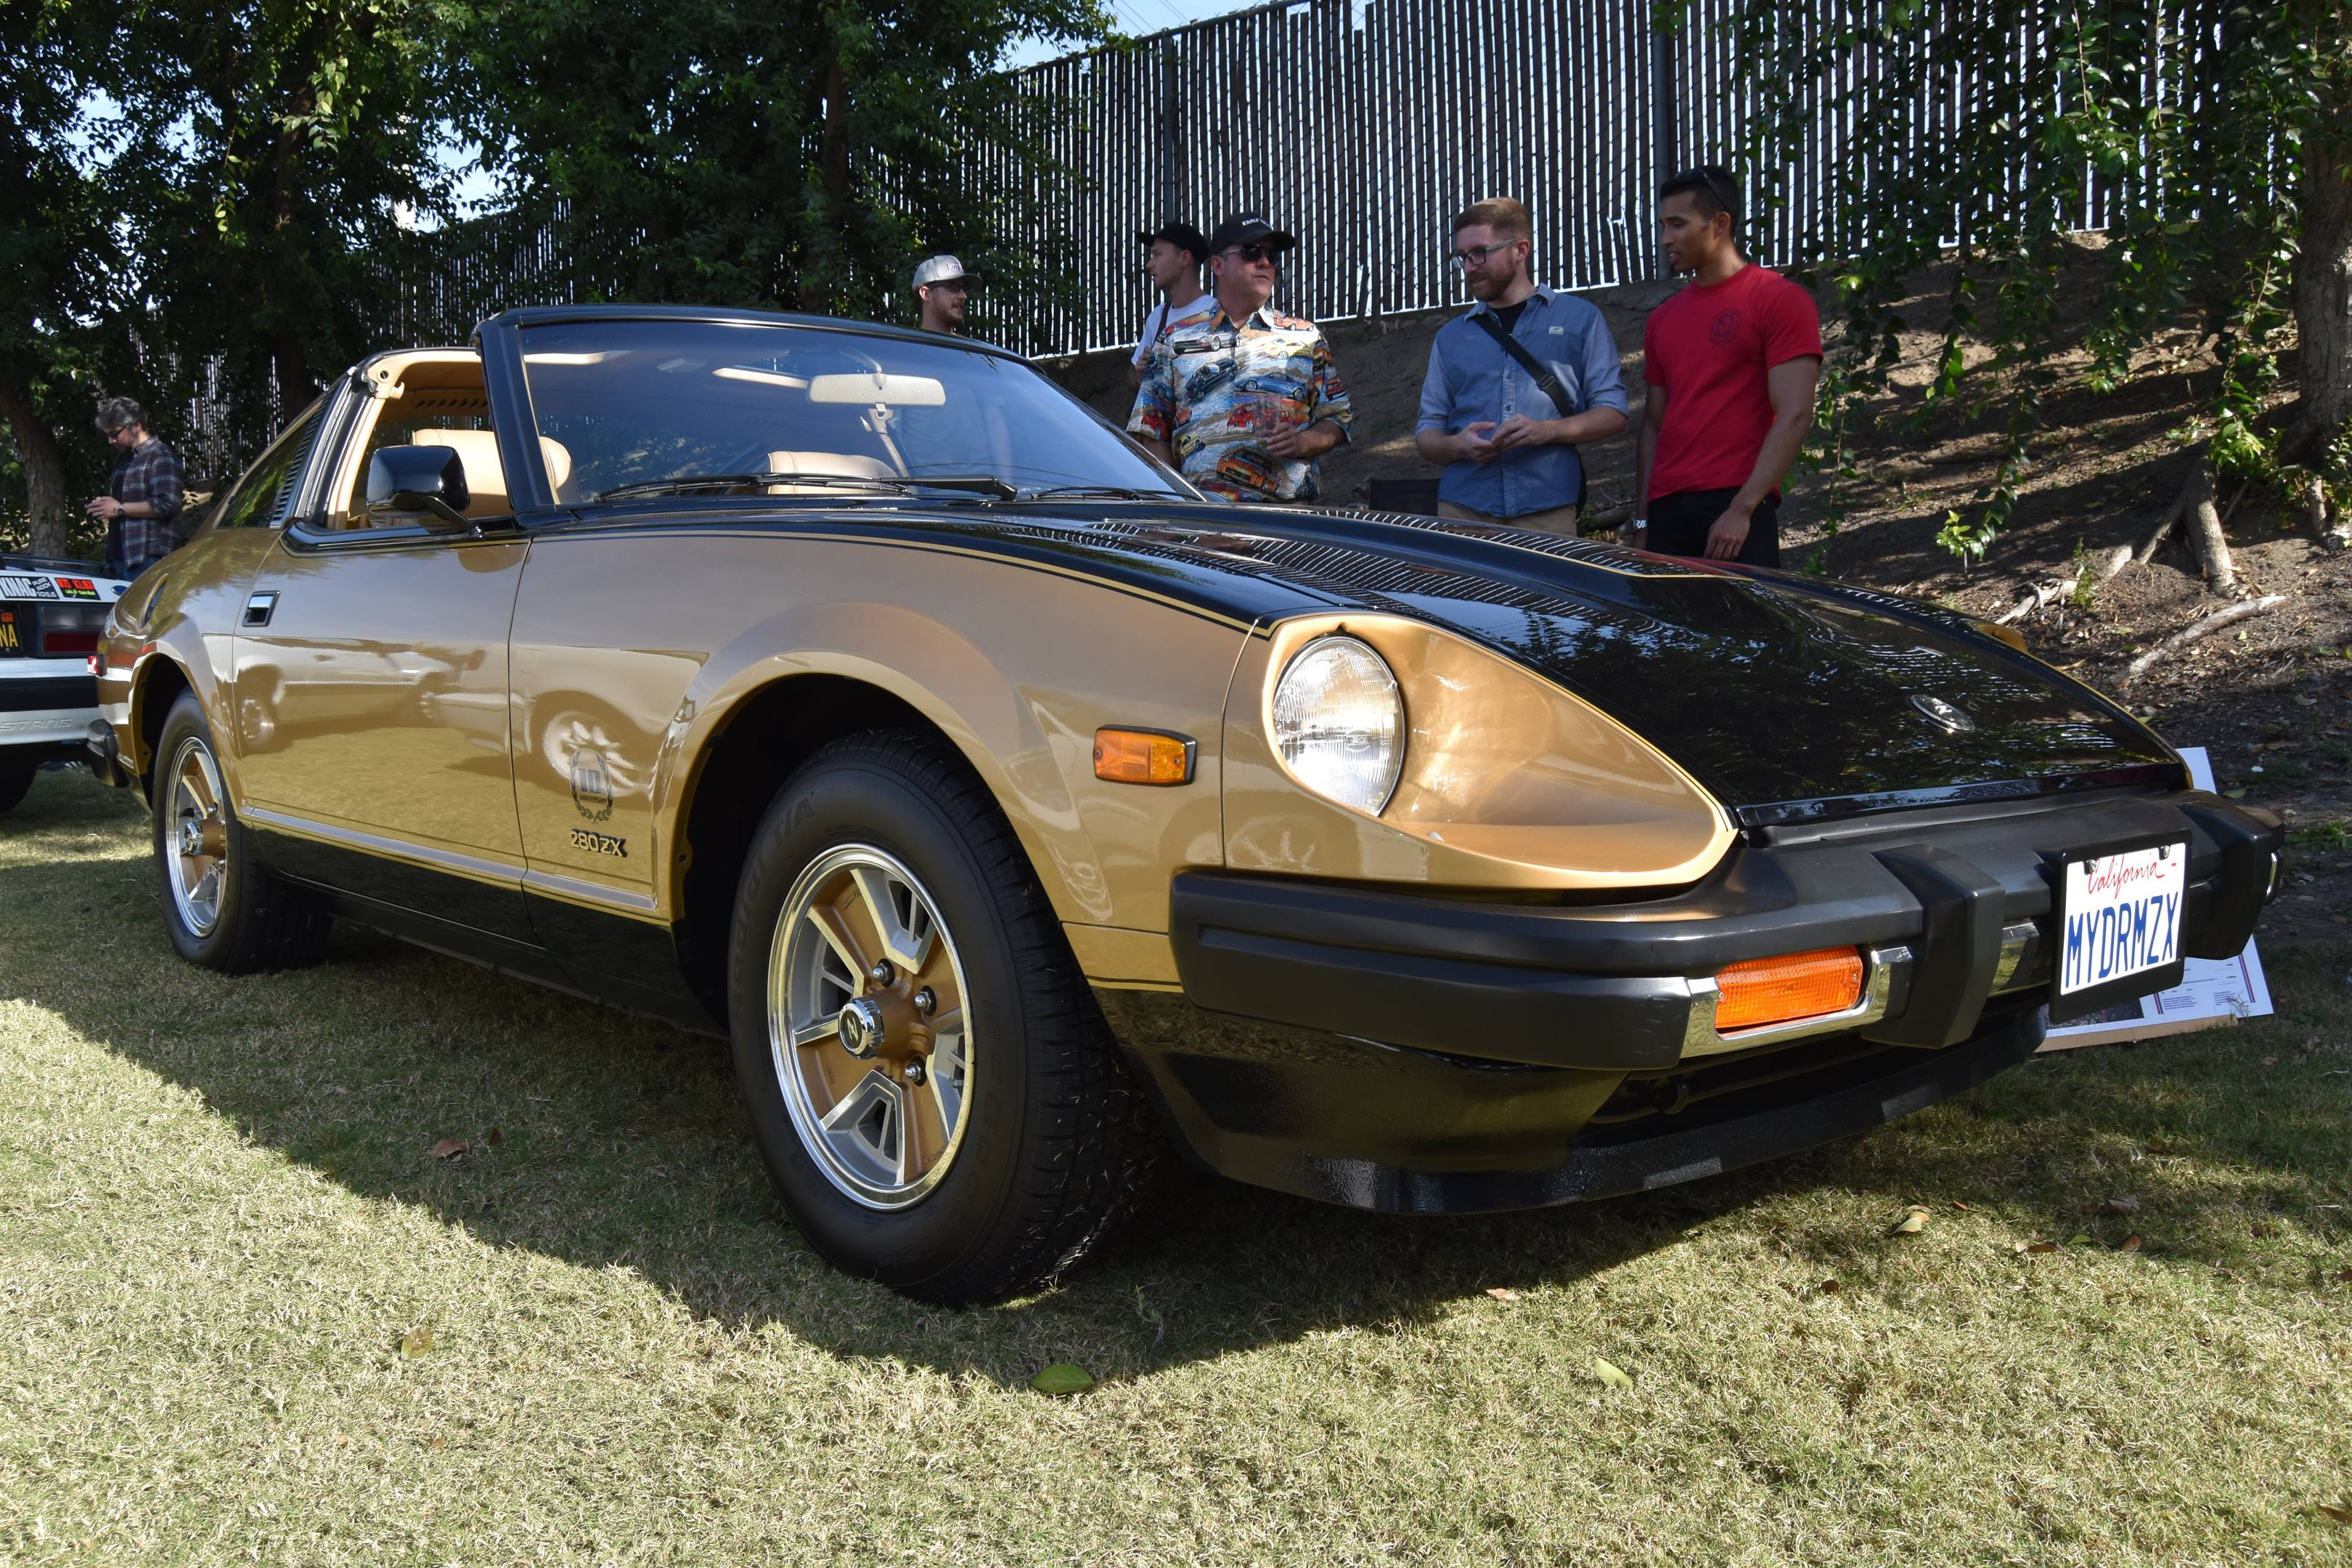 1980 Datsun 280ZX 10th Anniversary Edition front 3/4